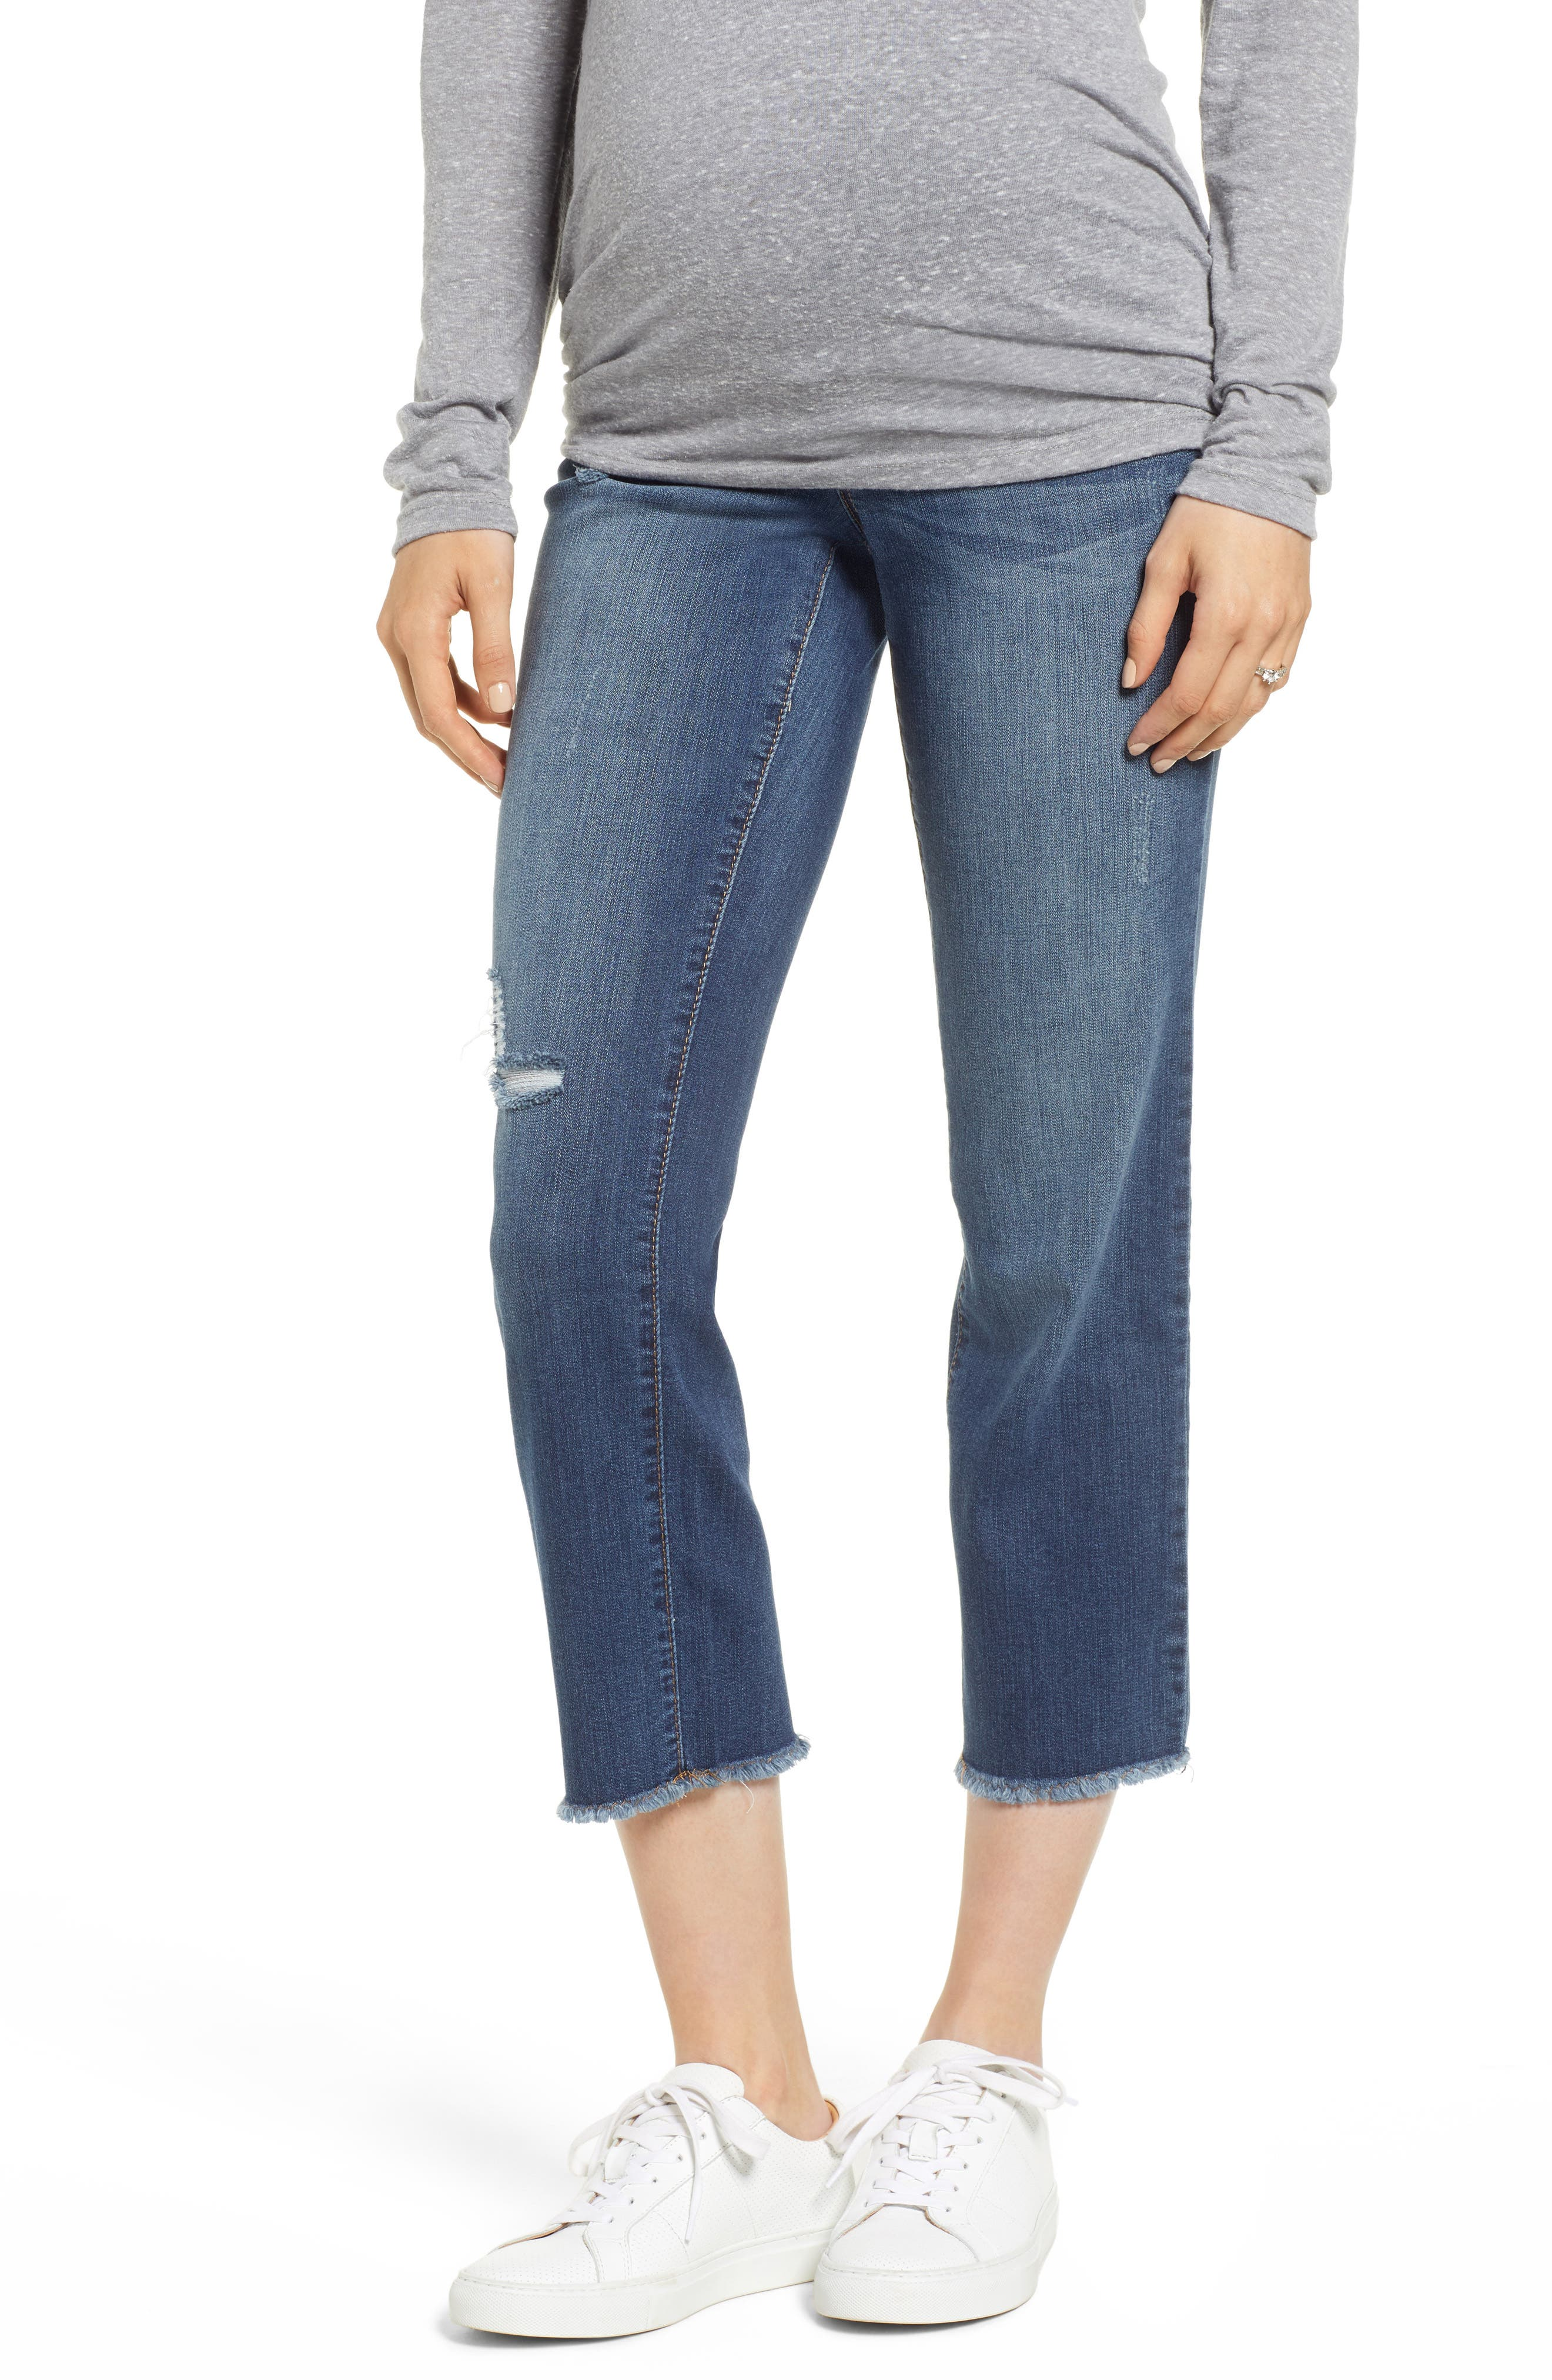 Women's 1822 Denim Cassie Crop Straight Leg Maternity Jeans